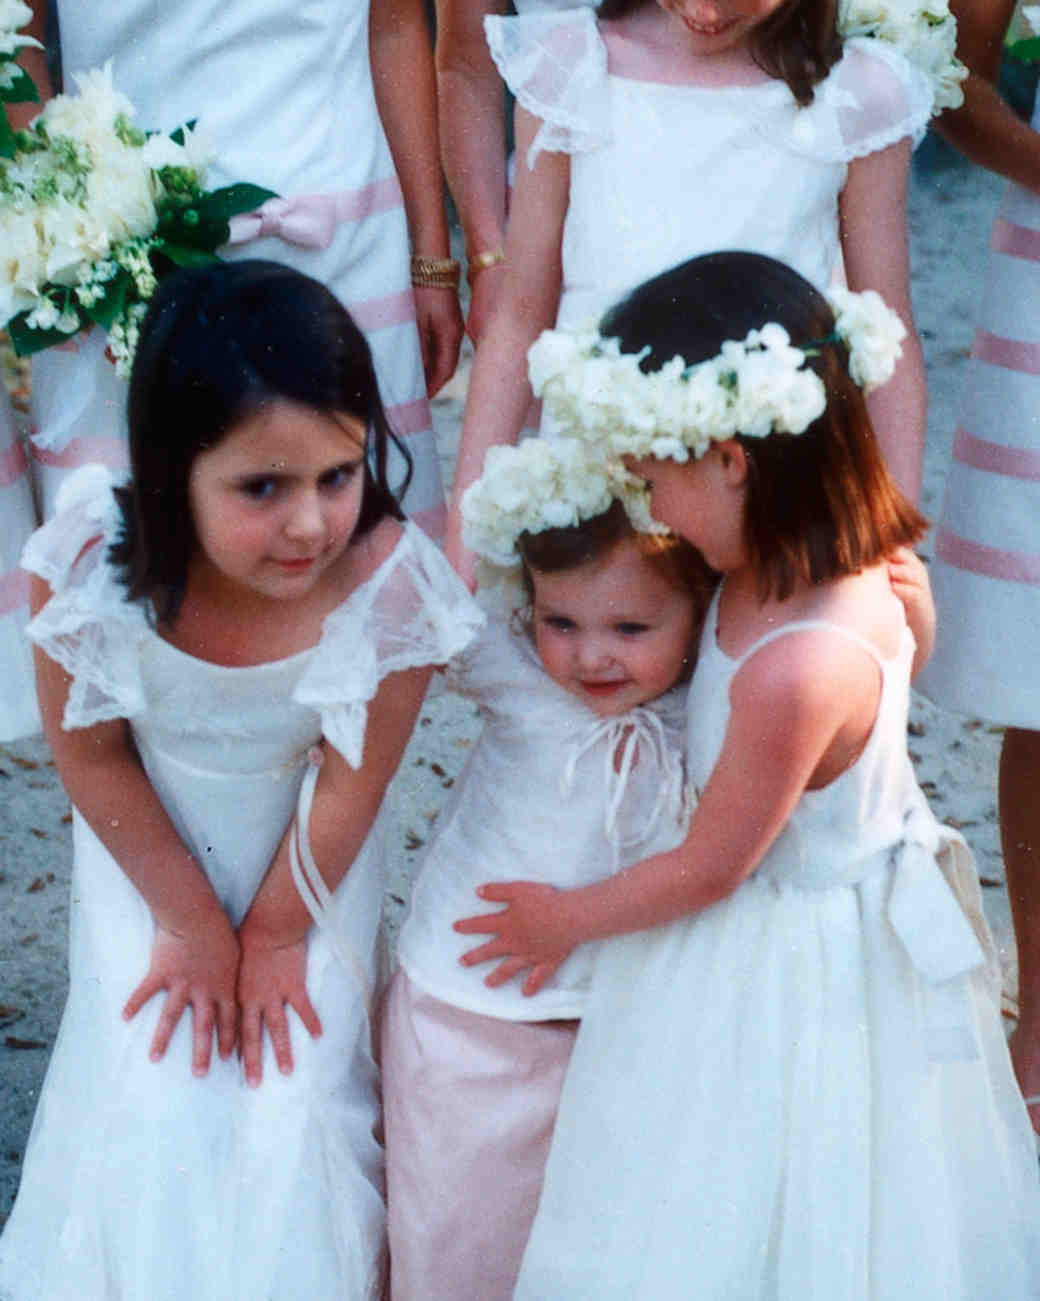 john-dolan-wedding-photographer-little-girls-0914.jpg